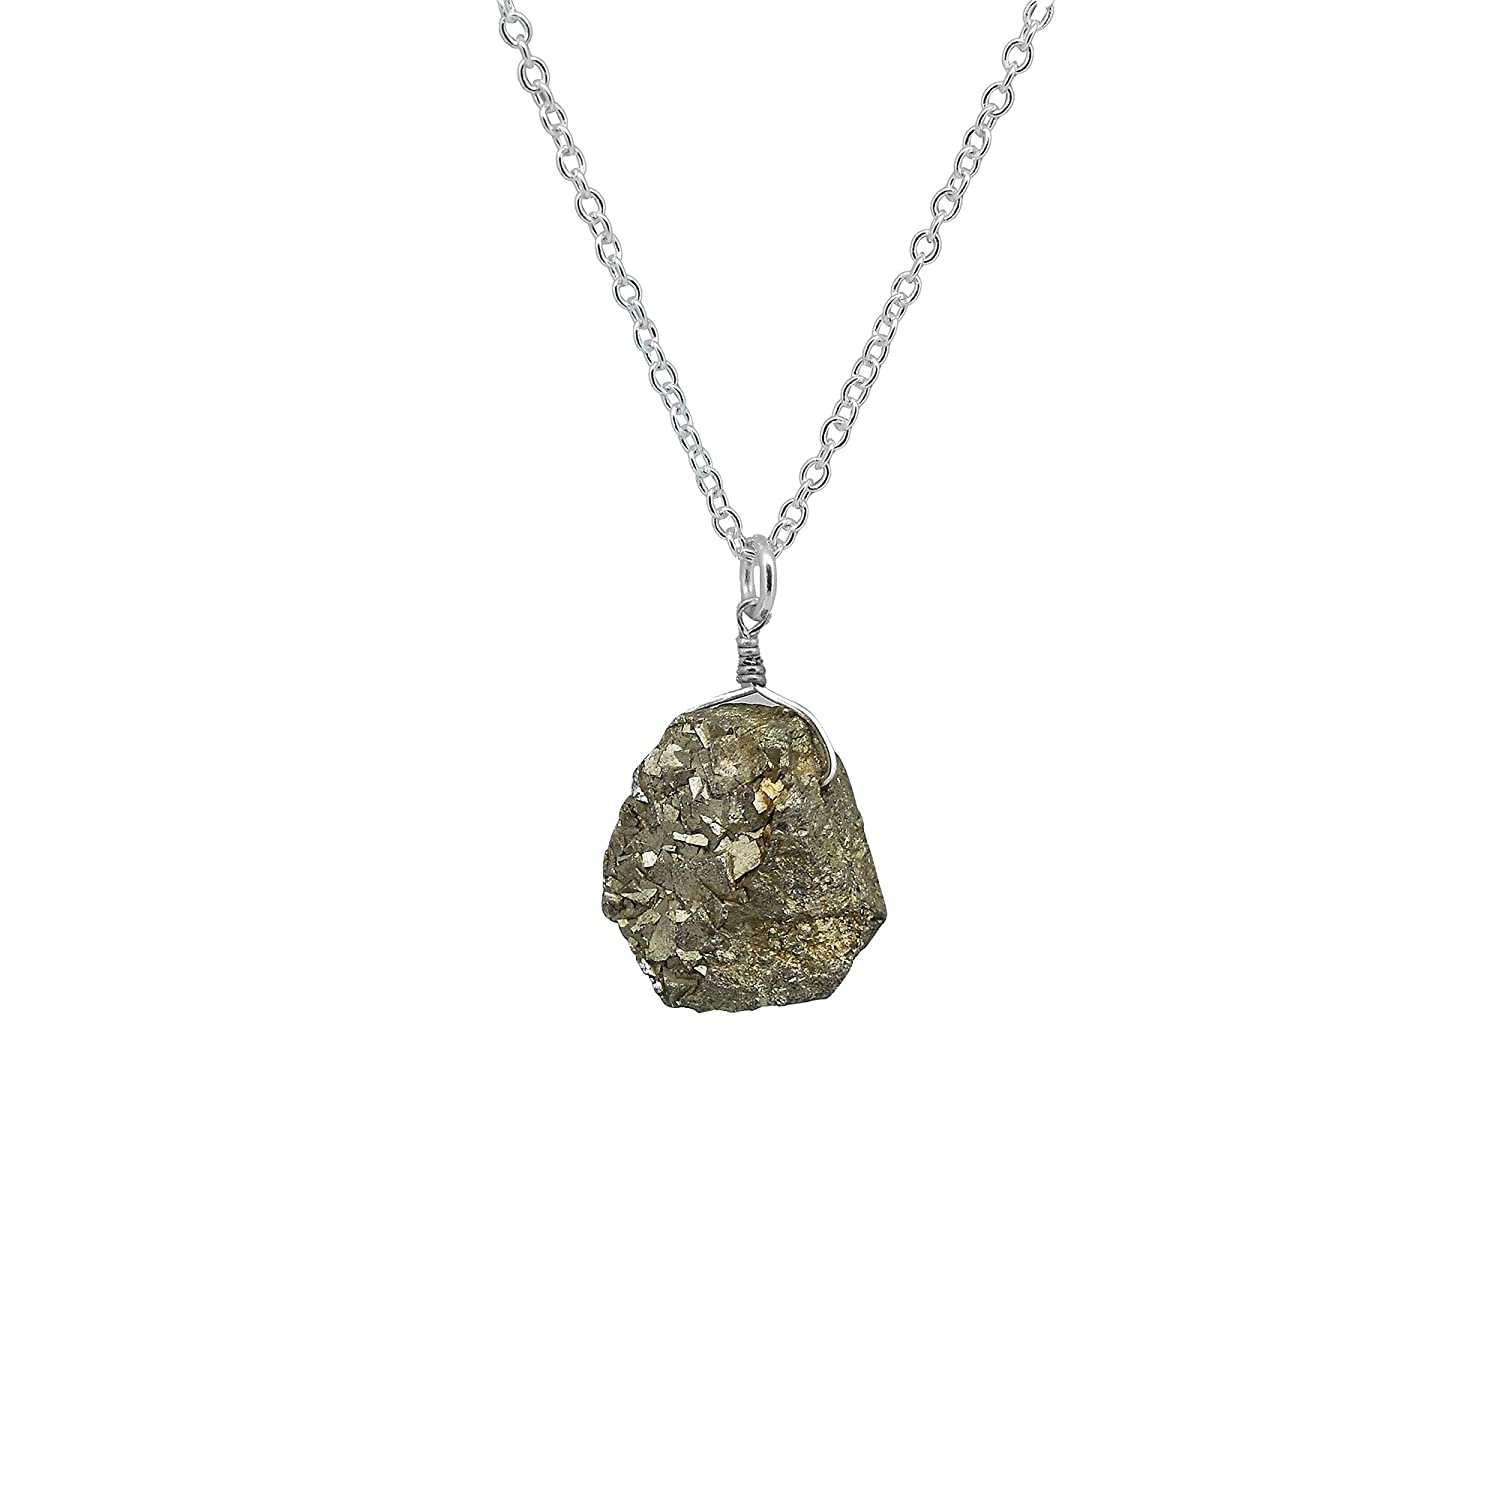 Gempires Natural Raw Pyrite Pendant Crystals Milwaukee Mall San Jose Mall Necklace Gemst